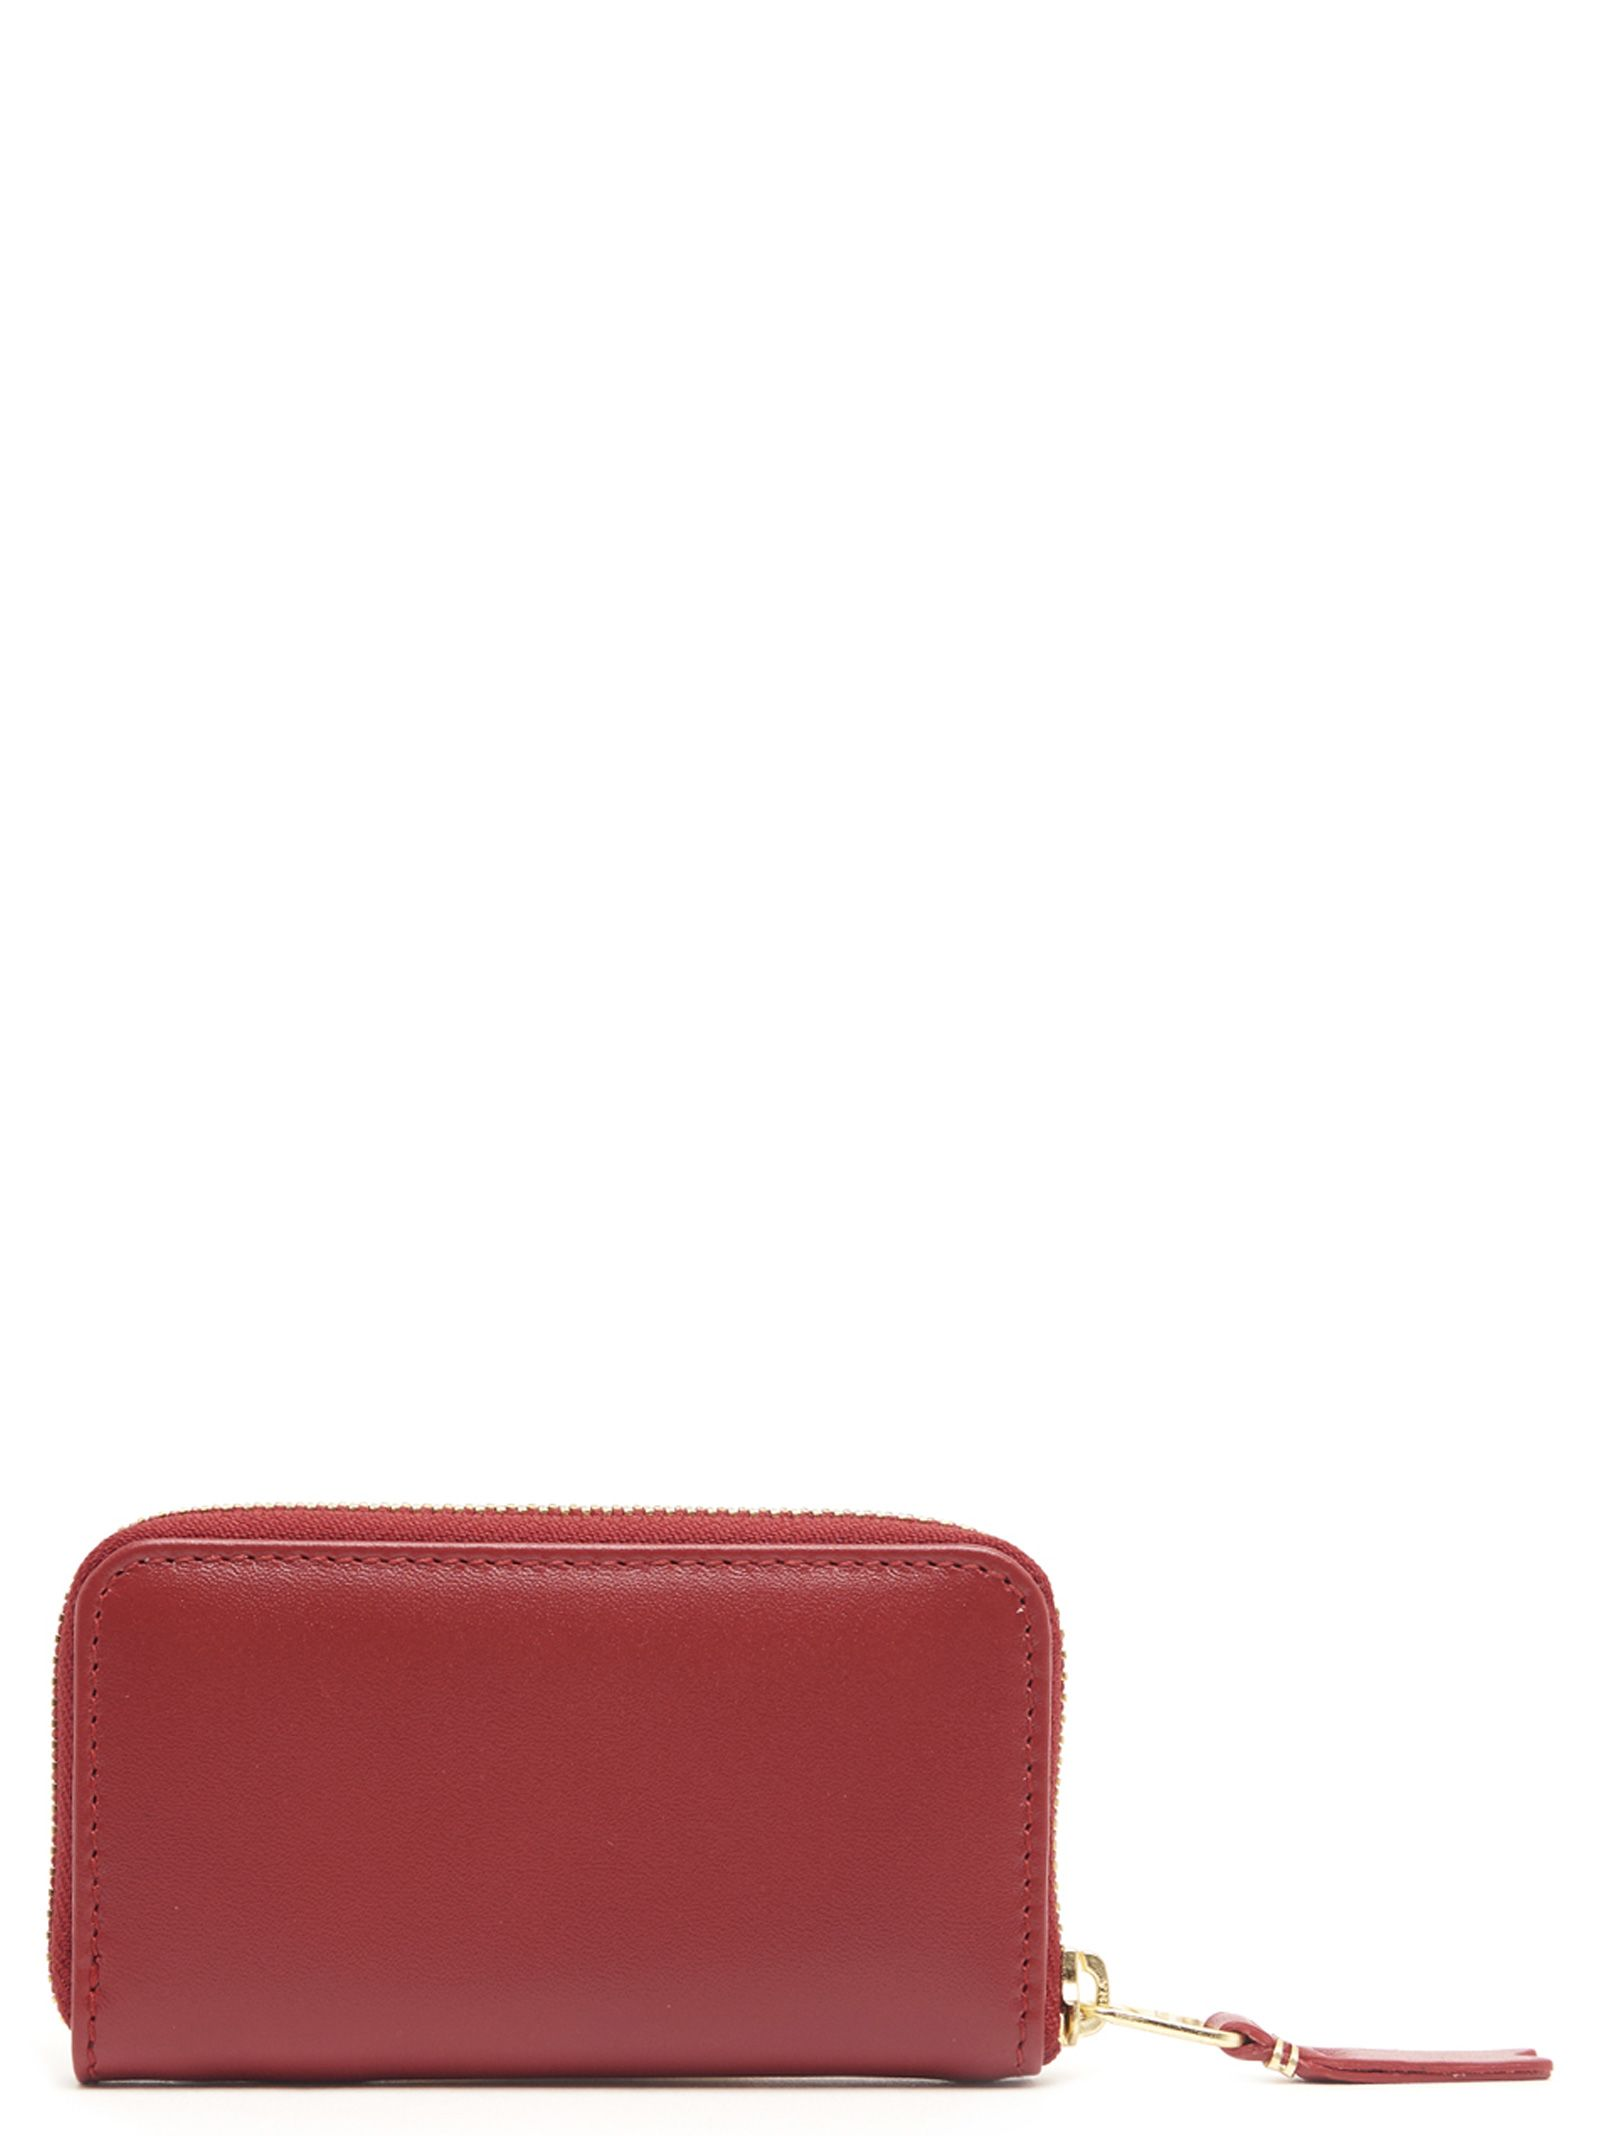 Comme Des Garçons Classic Leather Line Zipped Wallet in Red